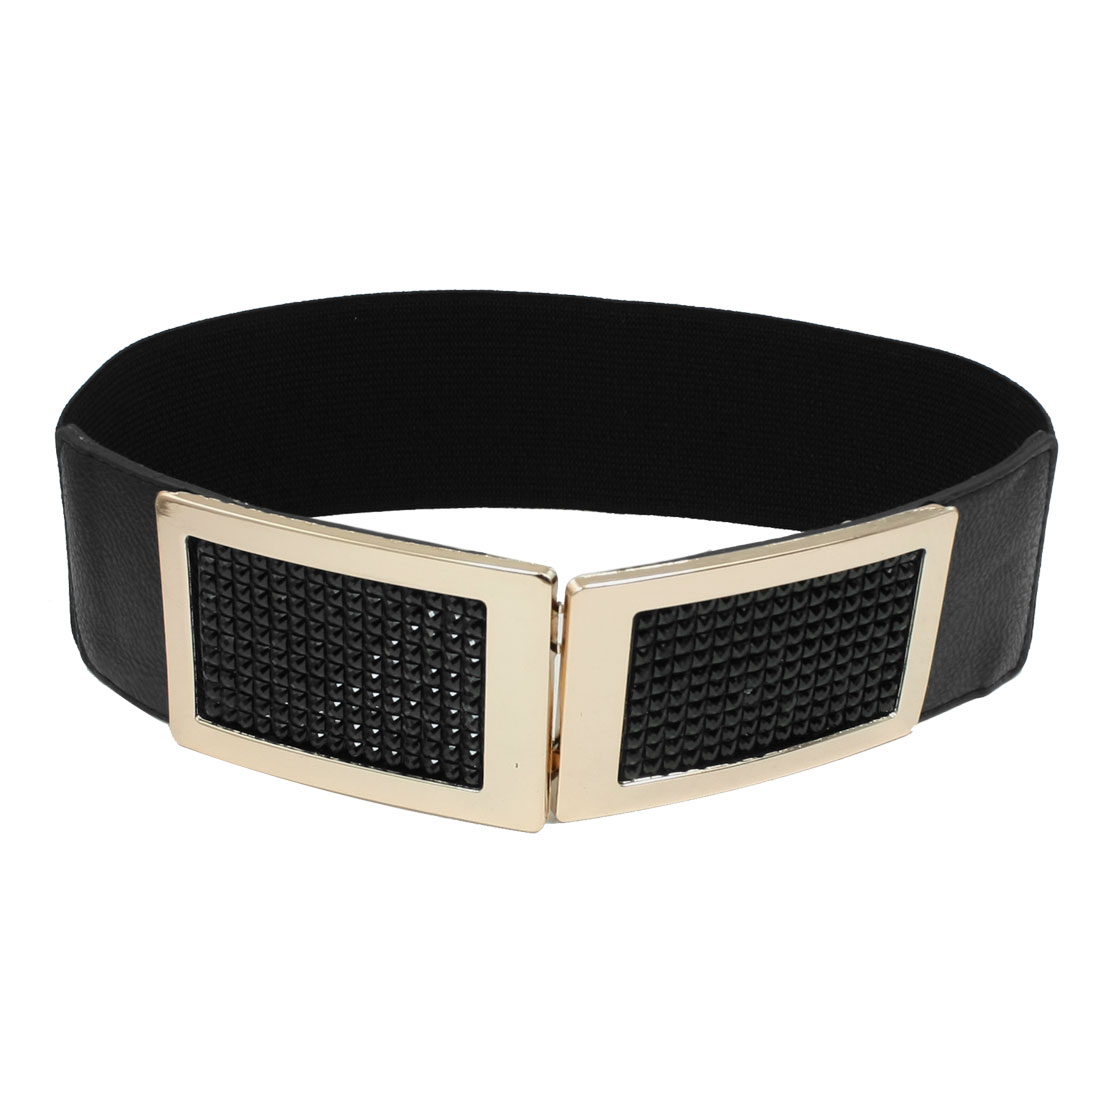 Women Facted Beads Inlaid Metal Interlocking Buckle Elastic Waist Belt Black